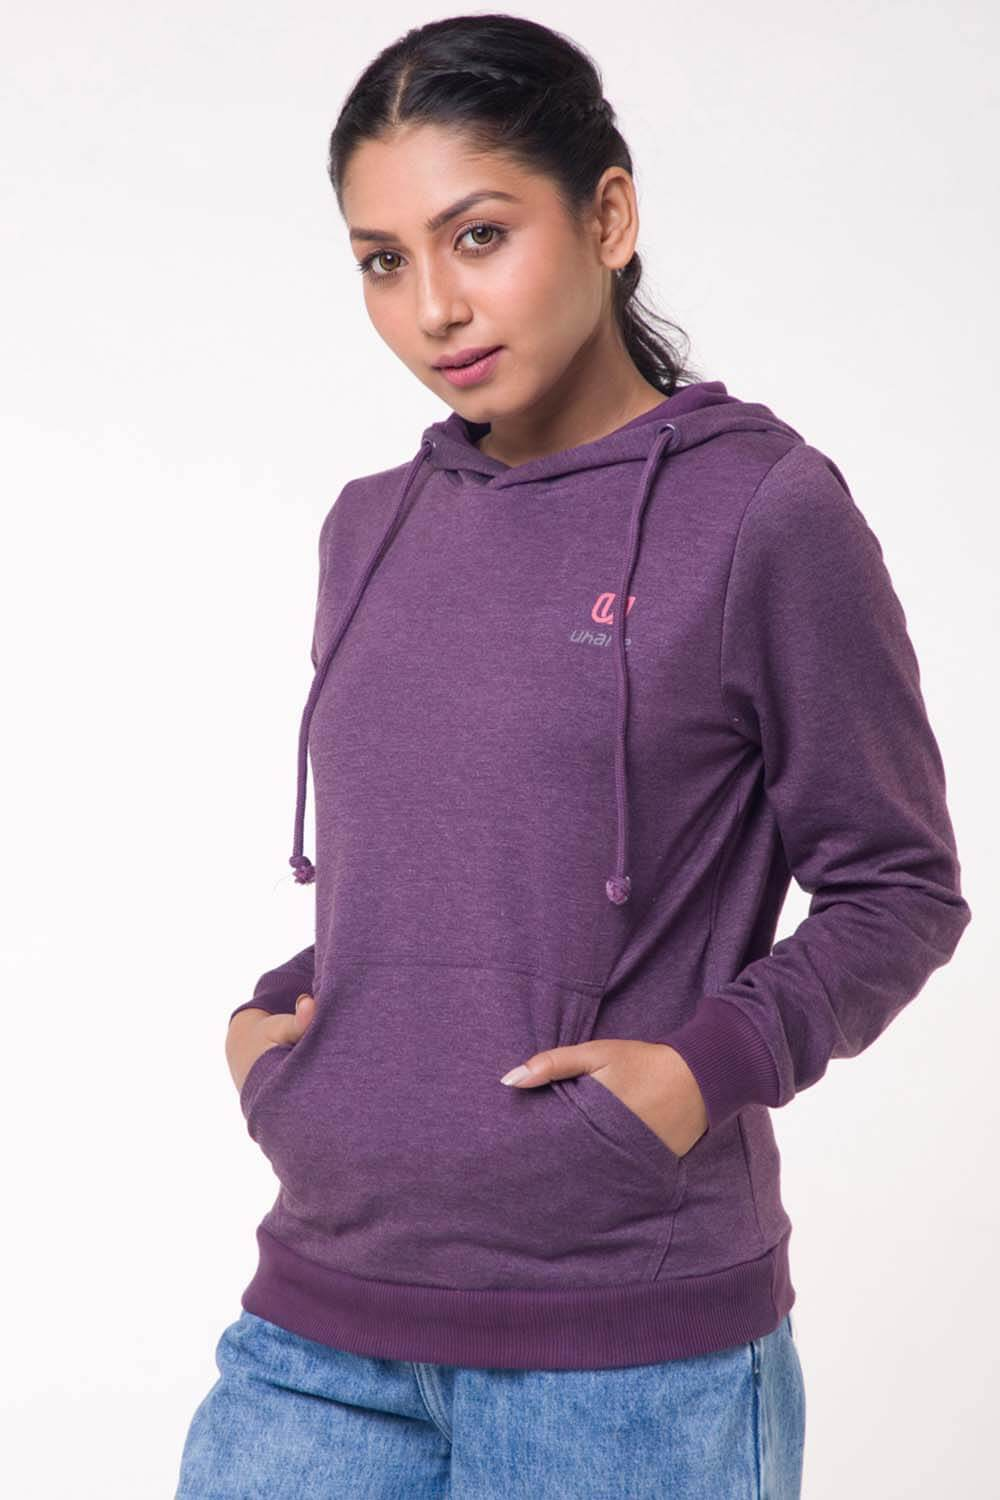 Women's Athleisure and Work-Out Purple Cotton Loose-Fit Sweatshirt